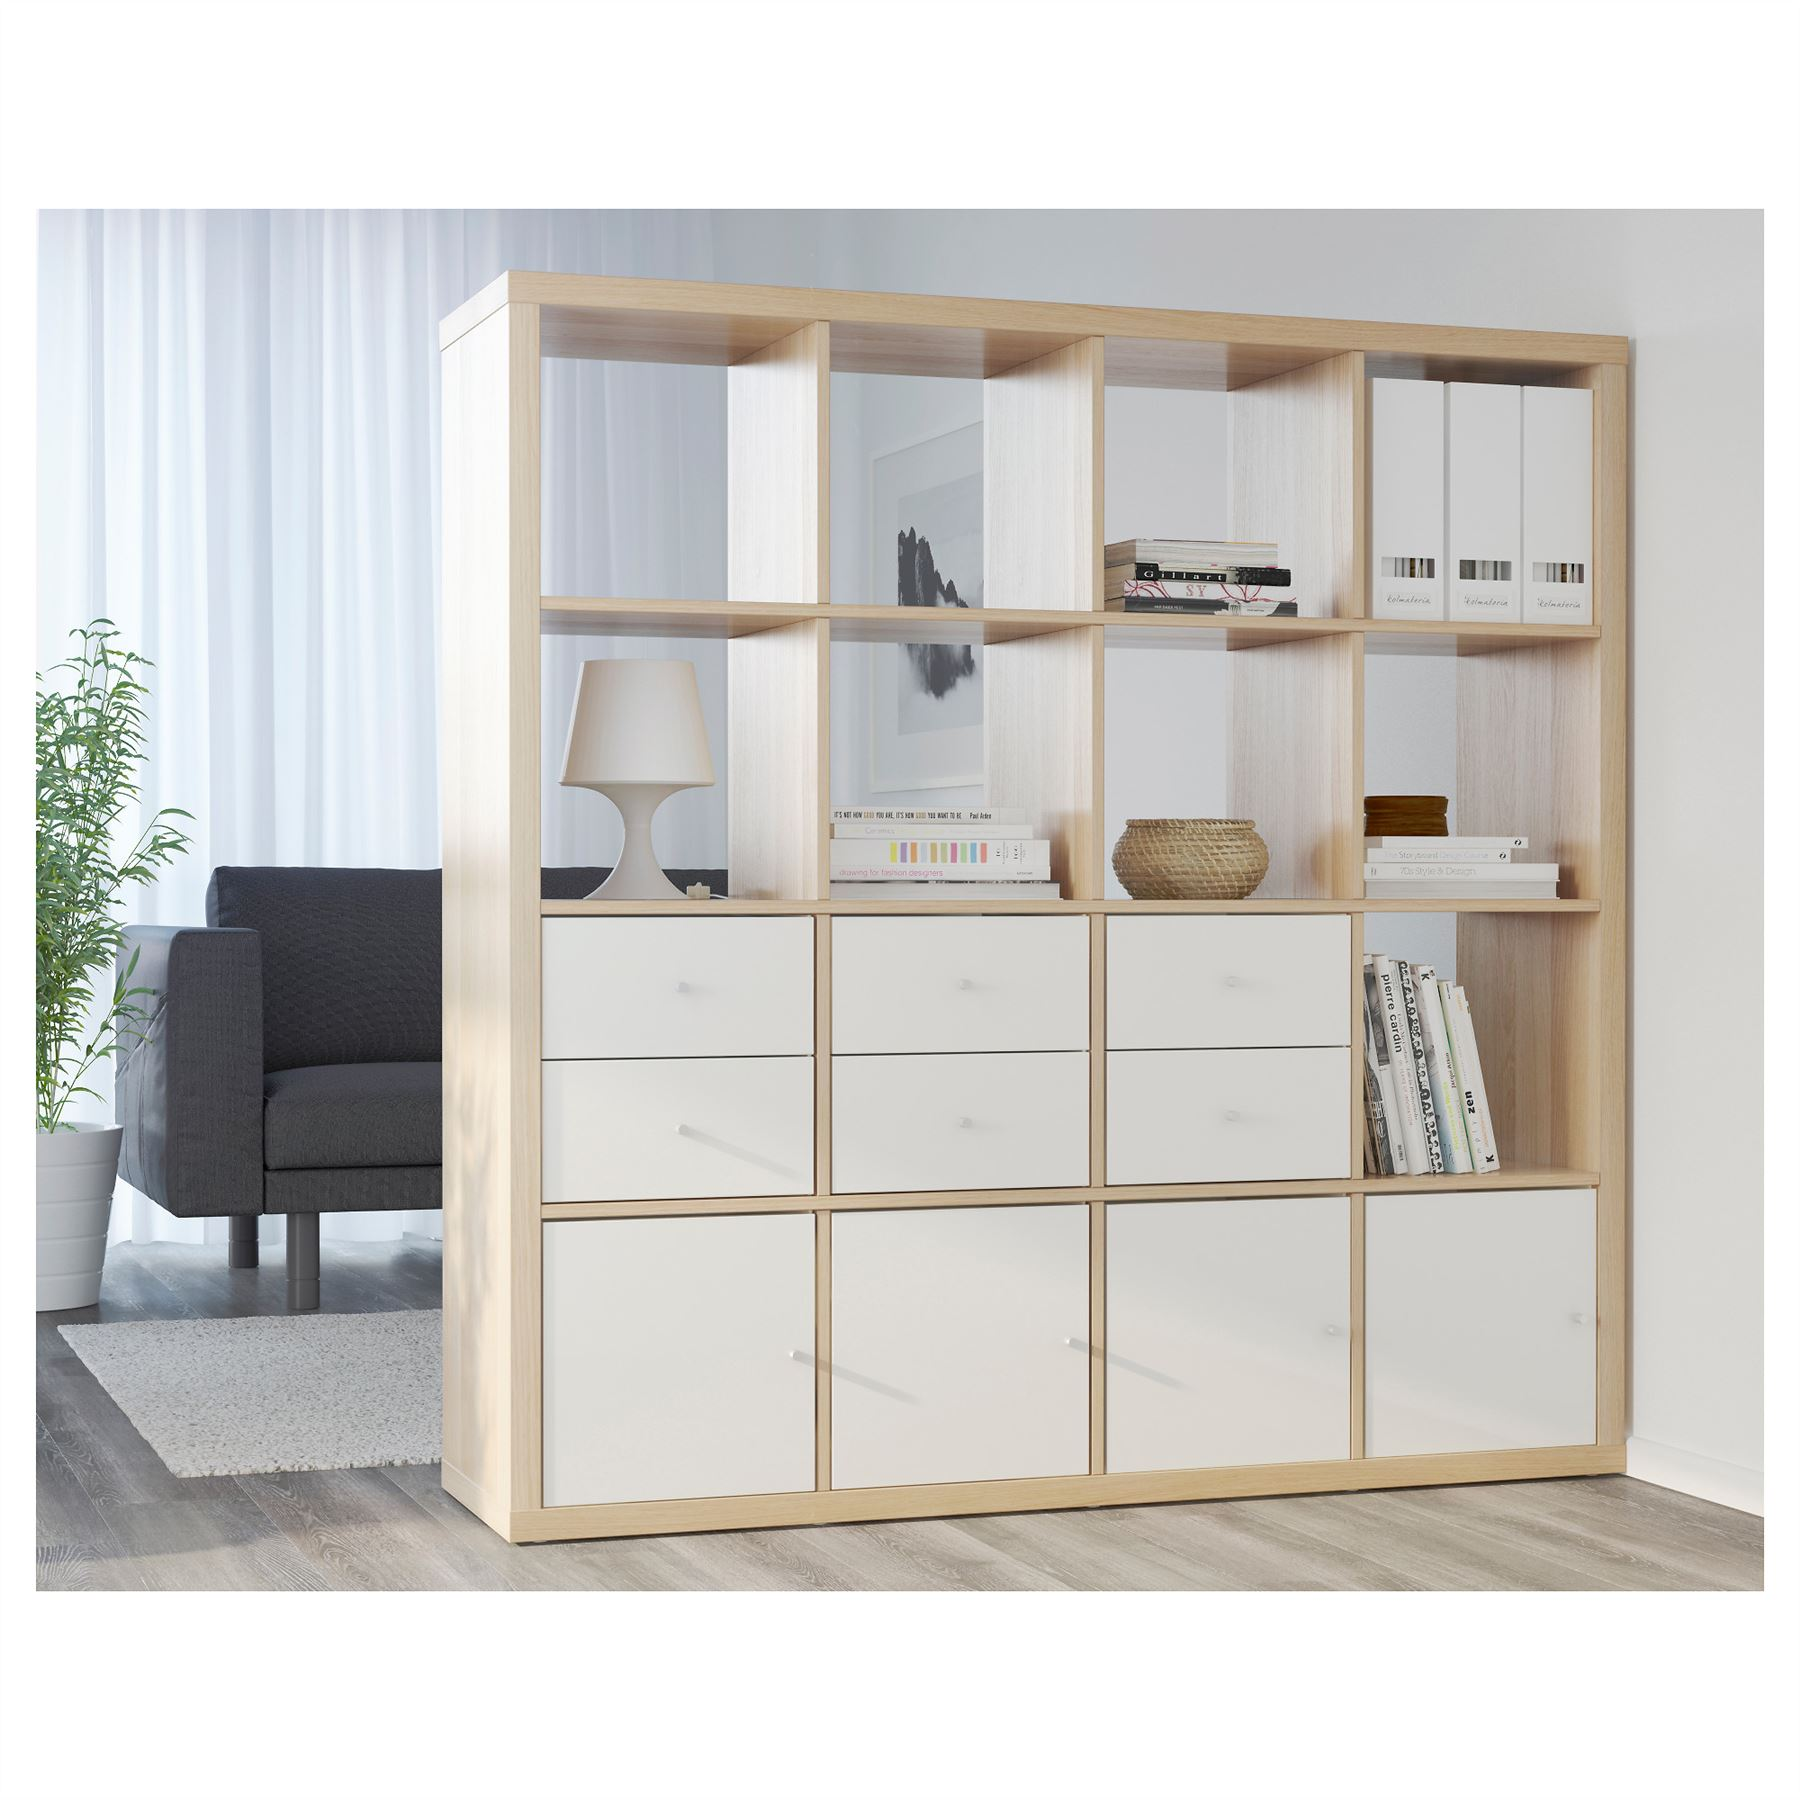 Ikea Regal Kallax Ideen Galerien Raumteiler Regal Ikea: Ikea Kallax 16 Cube Storage Bookcase Square Shelving Unit